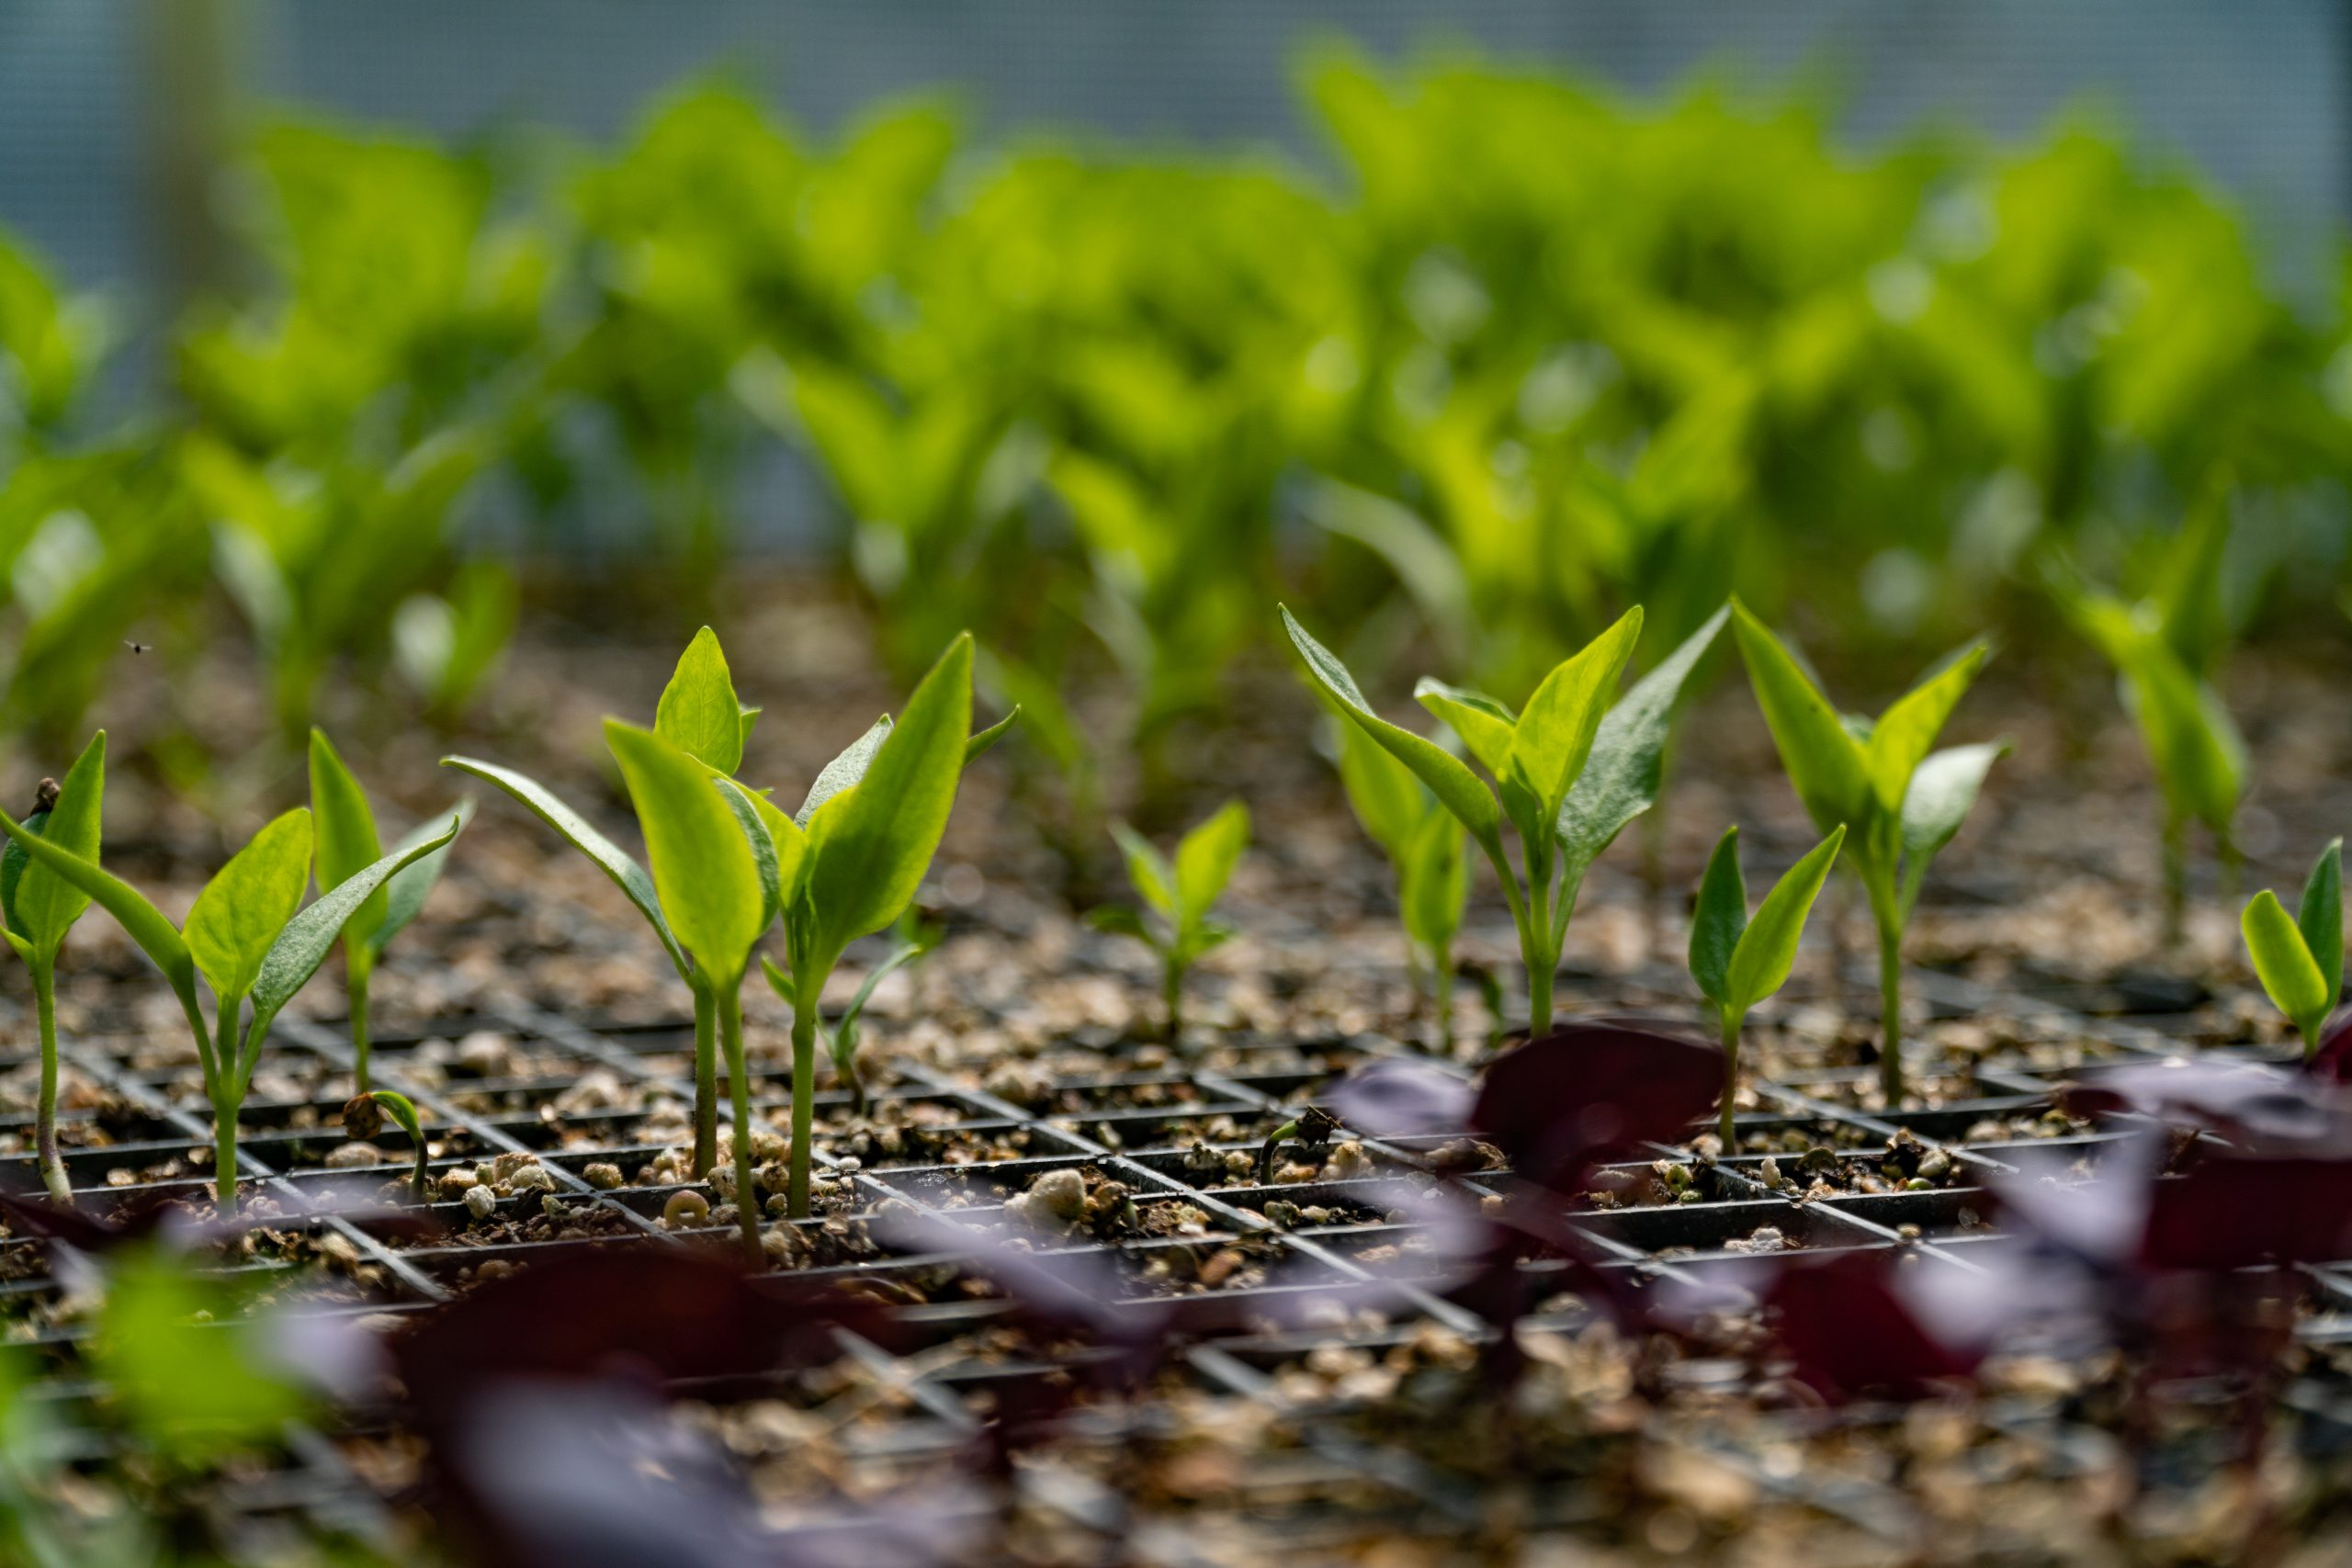 Sowing Seeds to Start Your Vegetable Garden